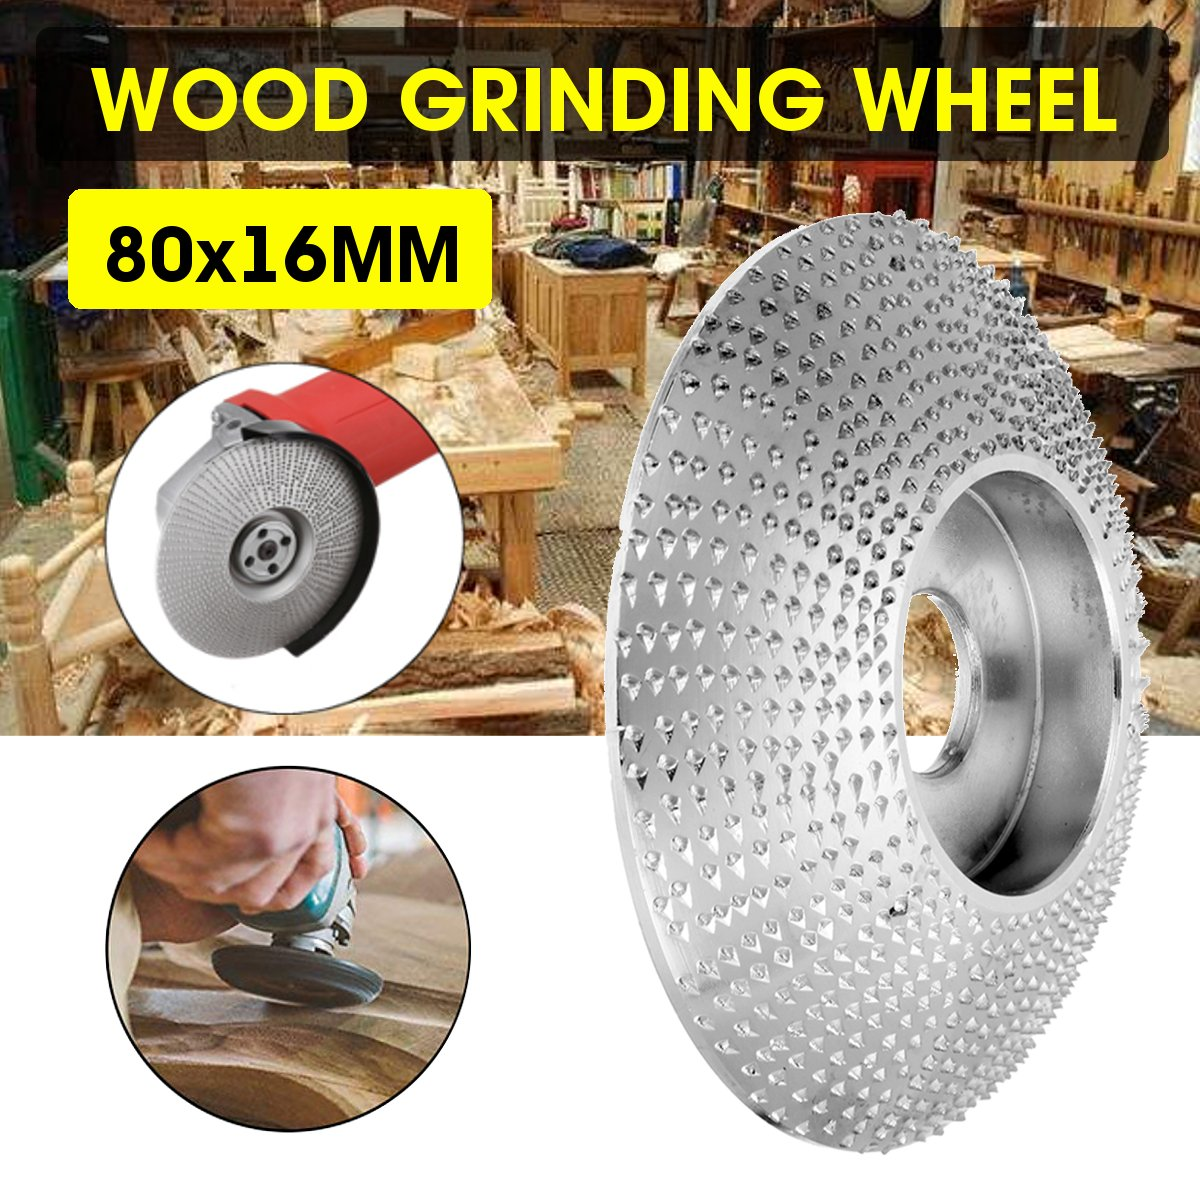 80mm Extreme Shaping Disc 16mm Bore Tungsten Carbide Wood Carving Disc Grinder Disc for 100 115 Angle Grinder Woodworking Tool80mm Extreme Shaping Disc 16mm Bore Tungsten Carbide Wood Carving Disc Grinder Disc for 100 115 Angle Grinder Woodworking Tool